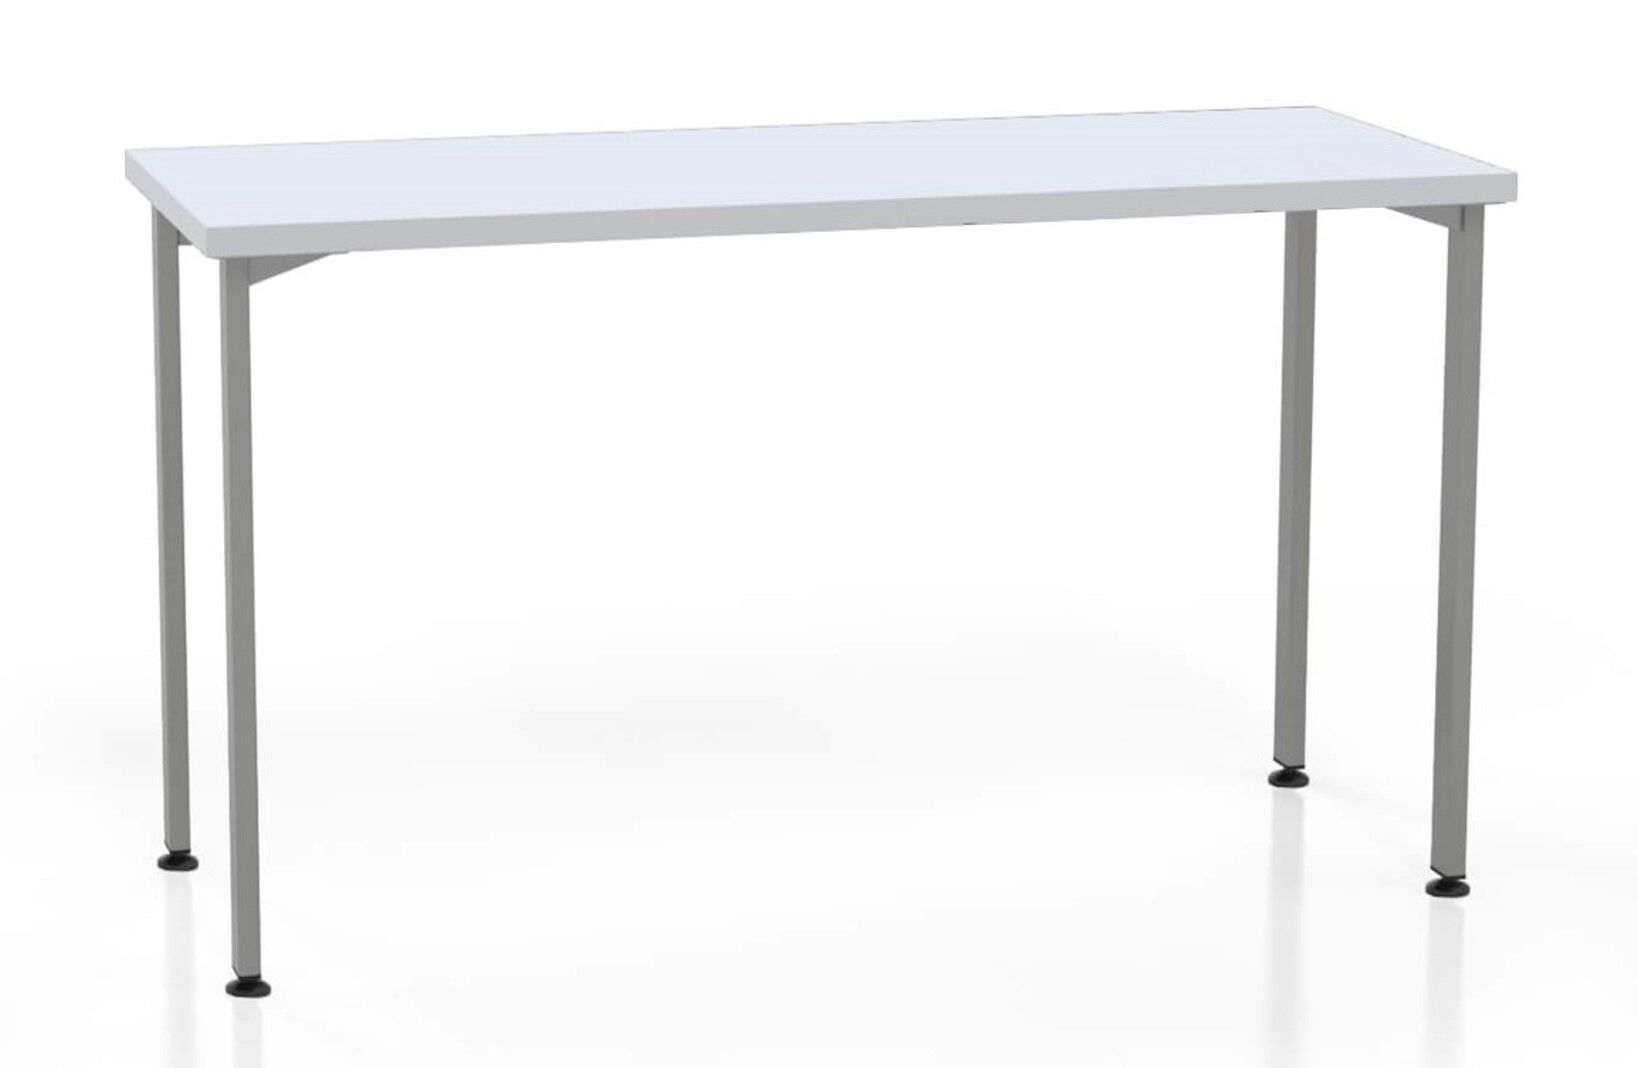 L shaped computer table desk_preview